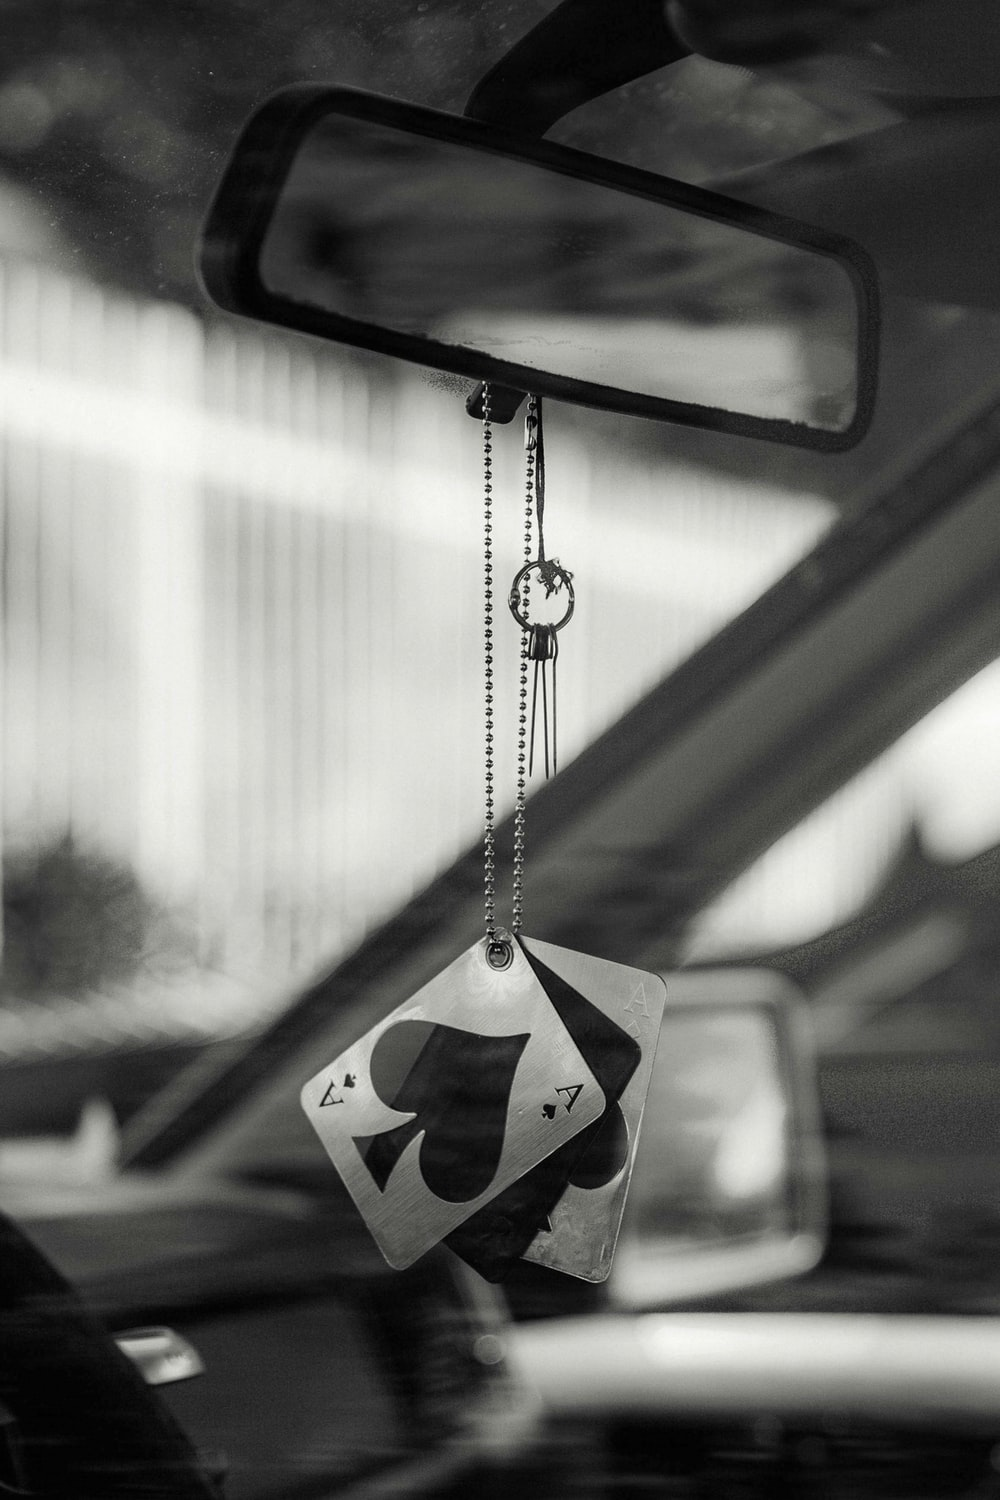 grayscale photography of playing card hanging on vehicle rear view mirror